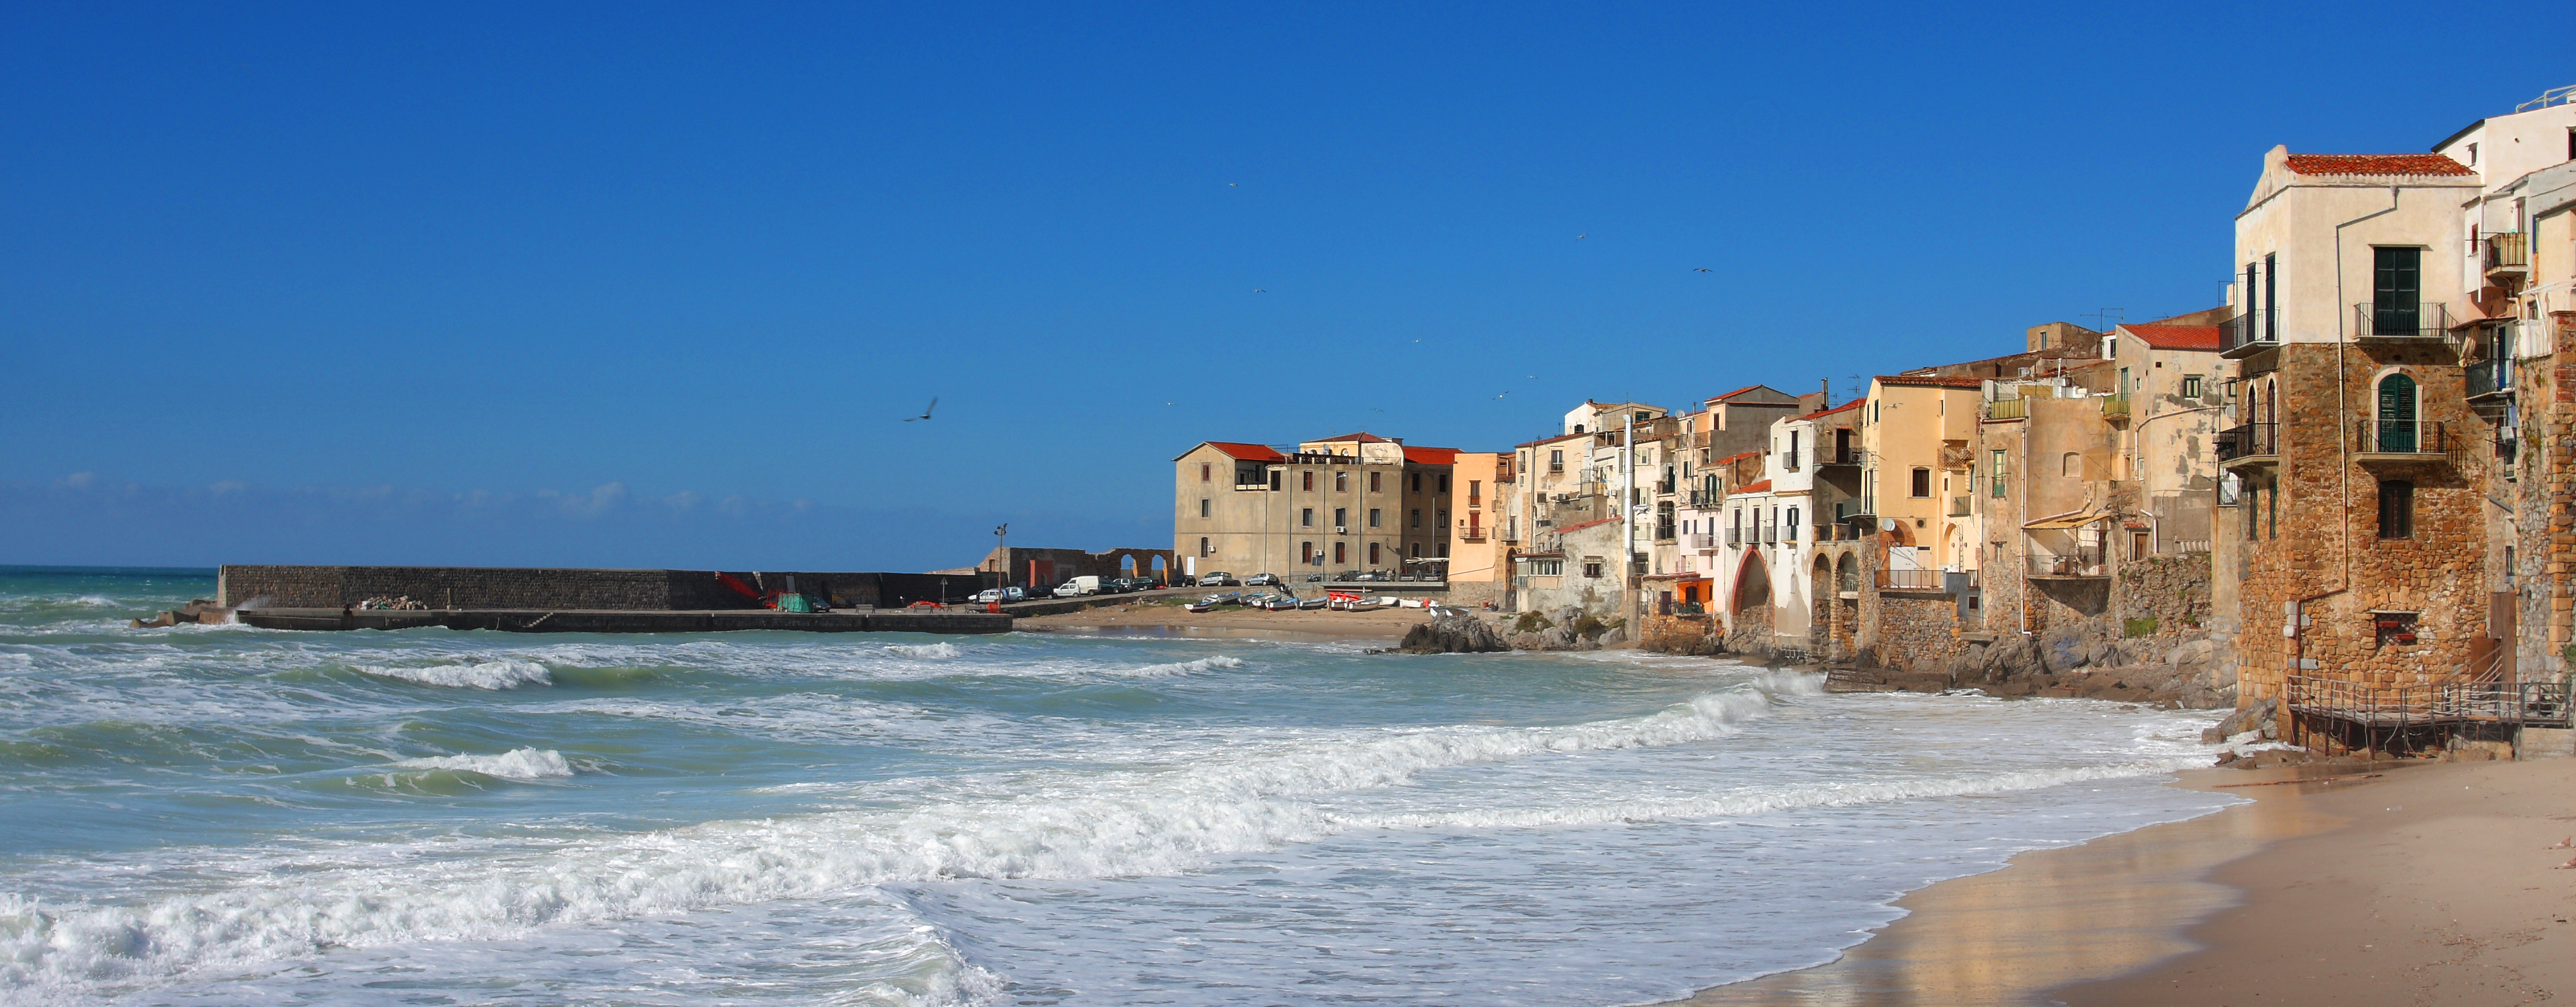 Best Hotels In Cefalu